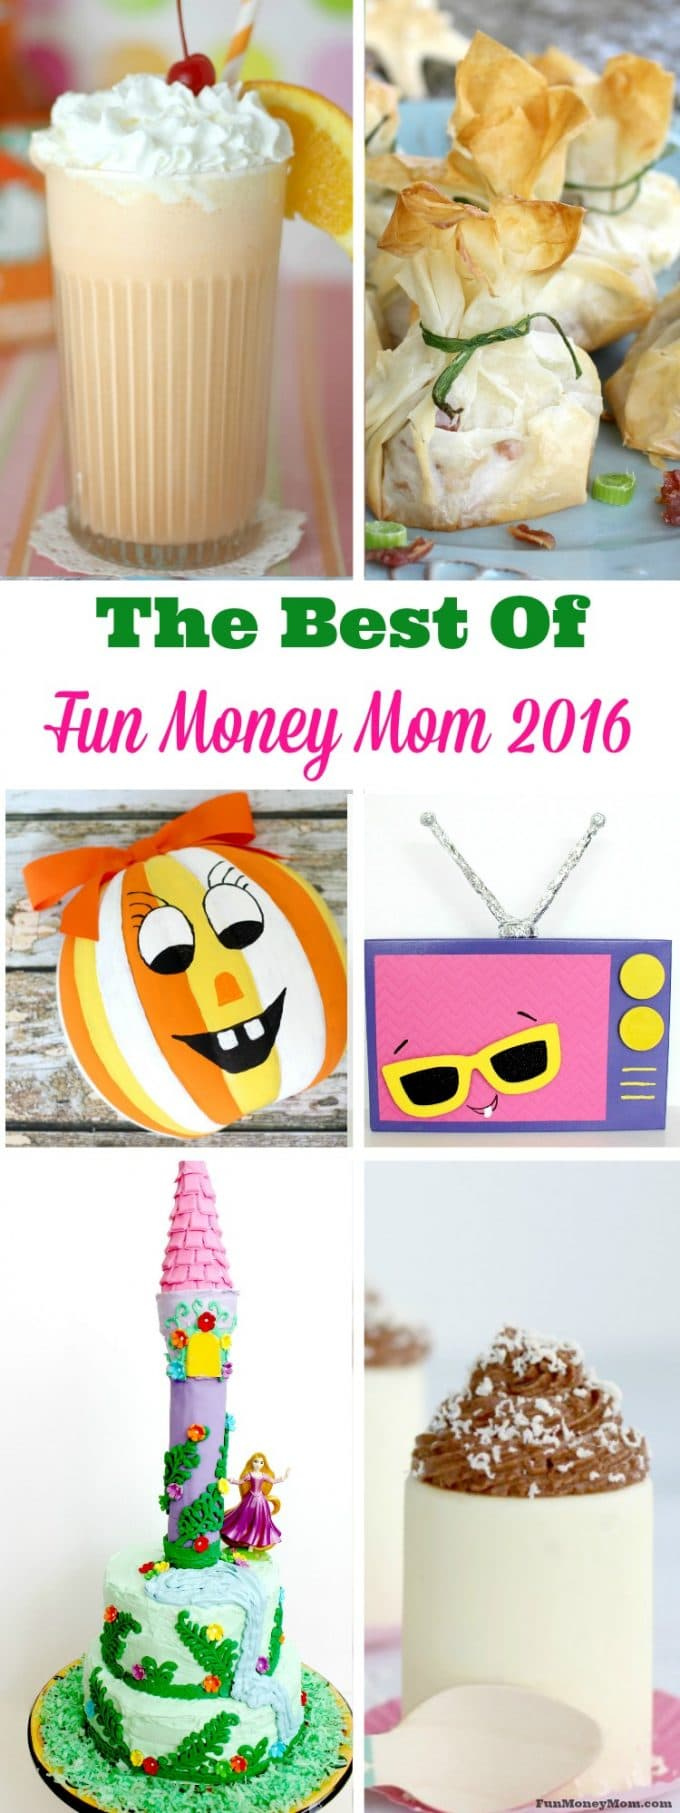 Desserts, holidays & DIY...check out the Best Of Fun Money Mom 2016 to find out what everyone was reading last year!